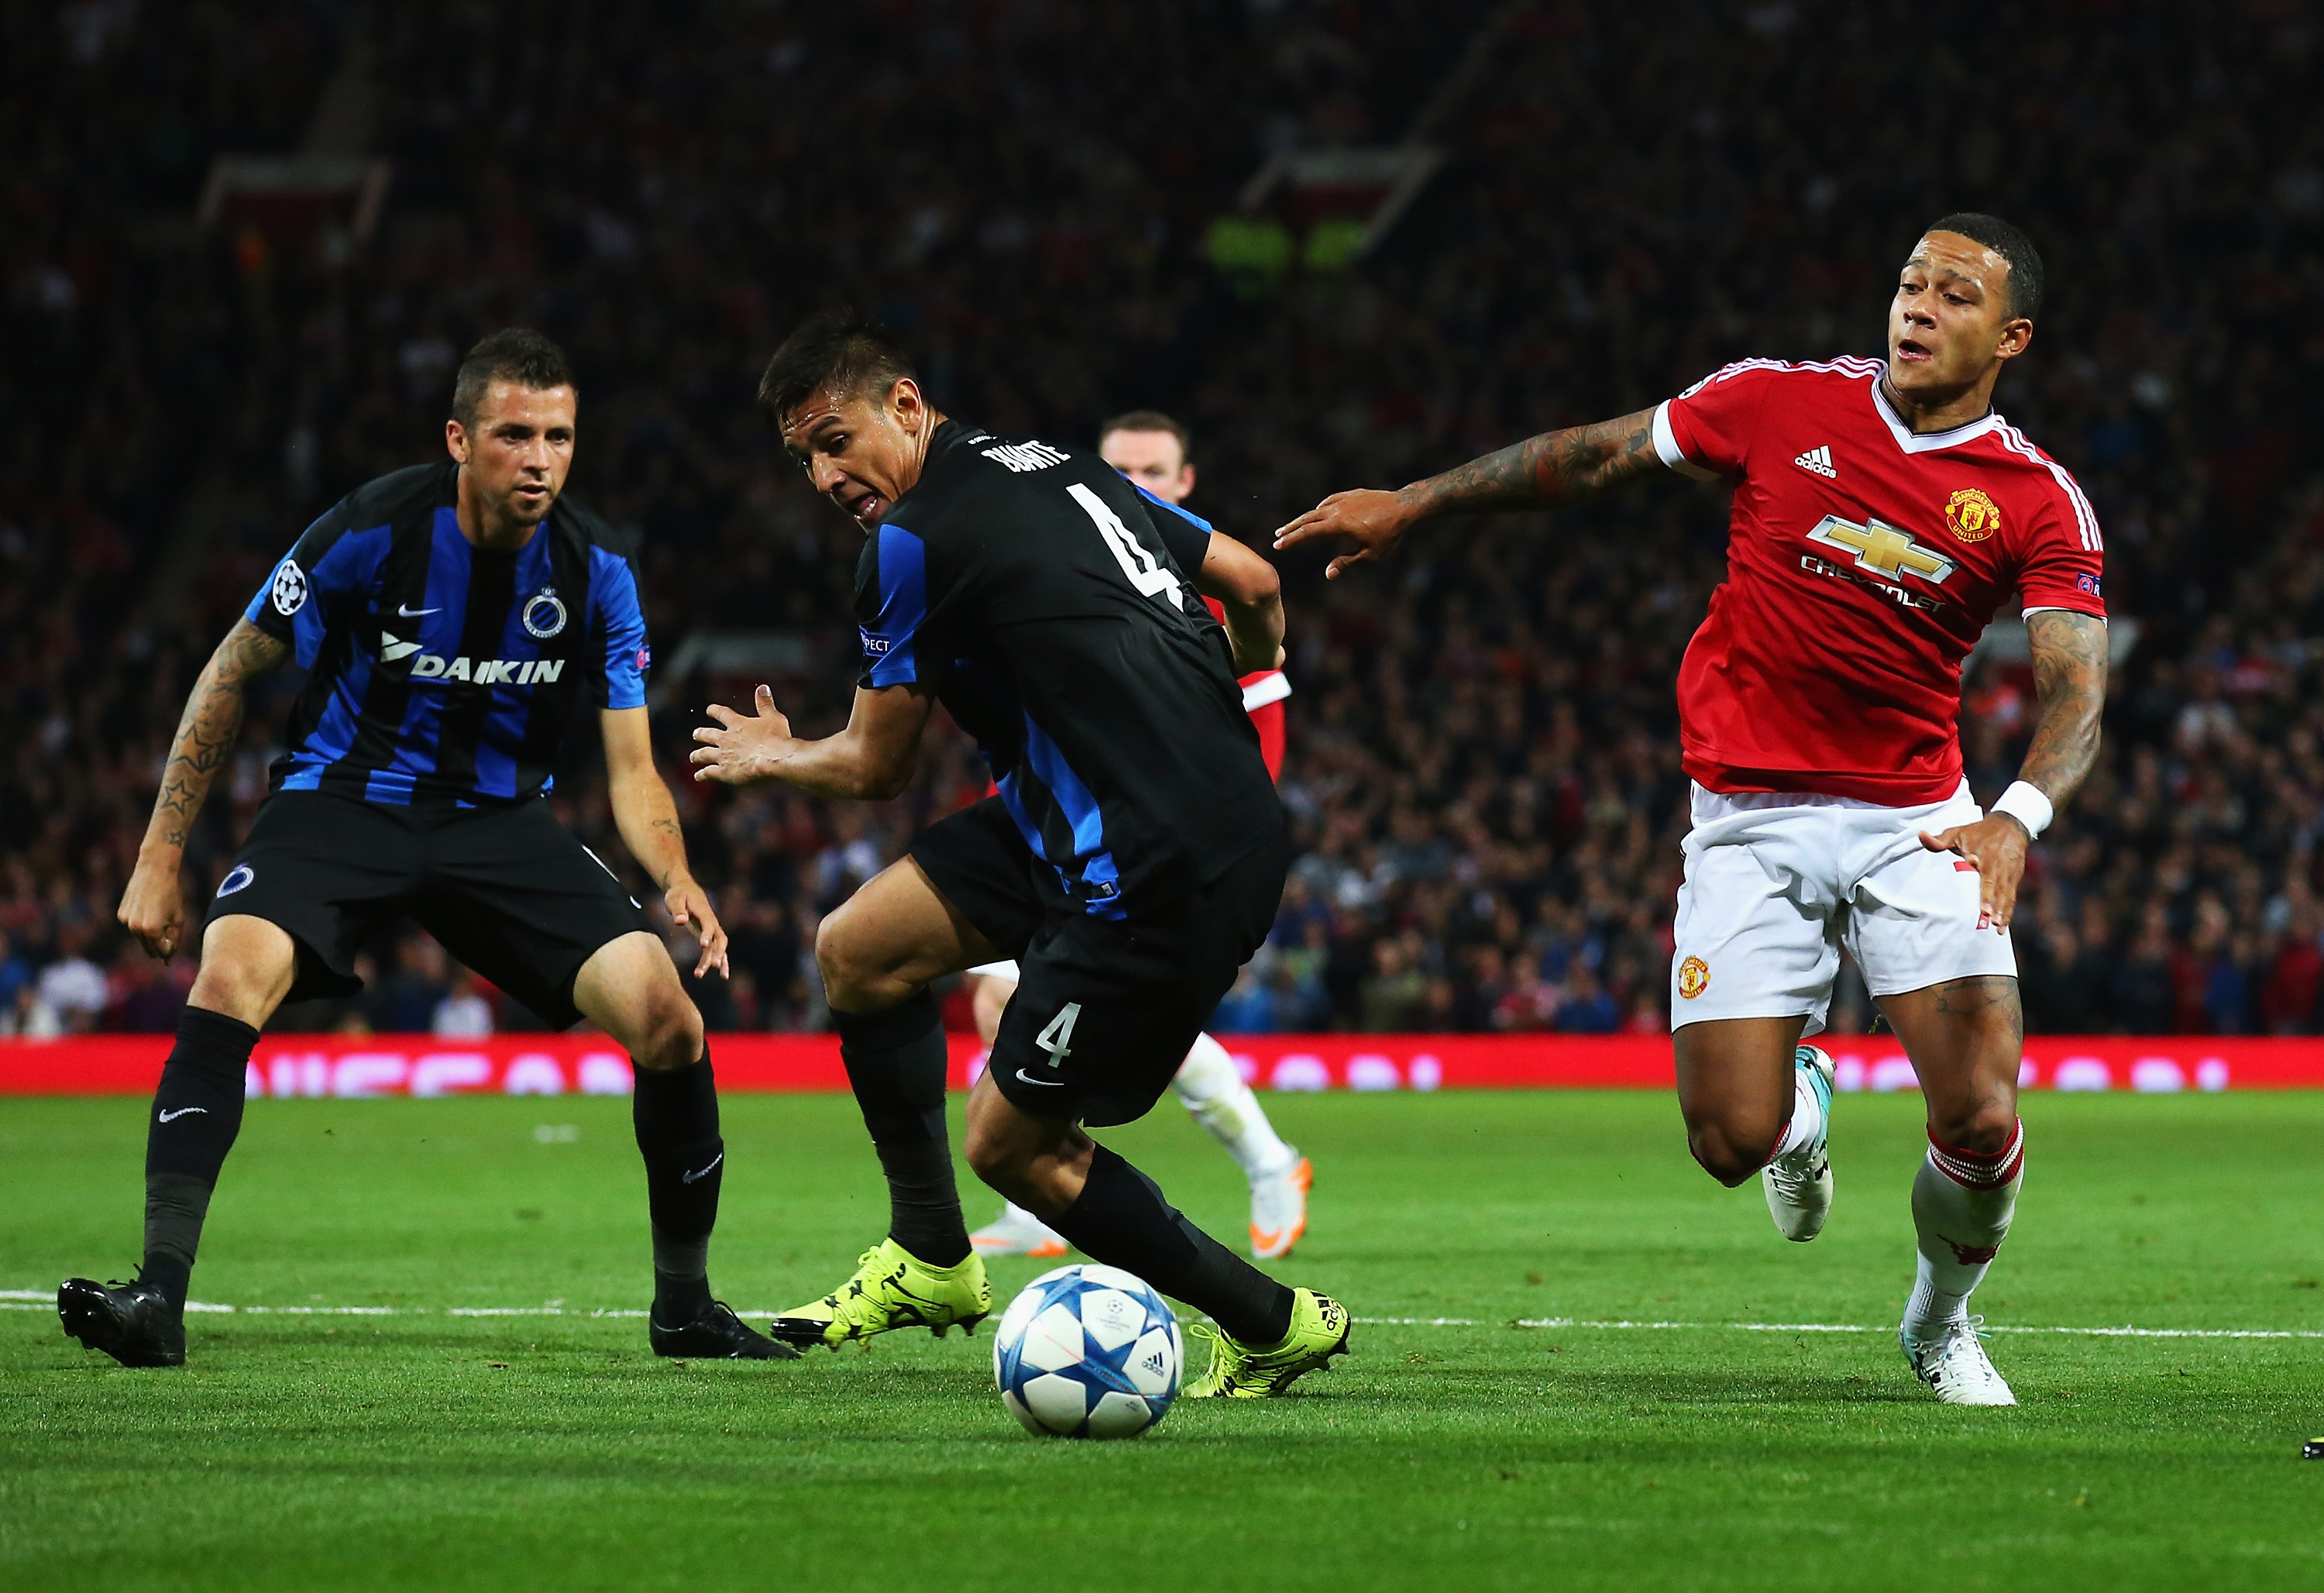 The Club Brugge backline admire the dribbling prowess of Memphis Depay